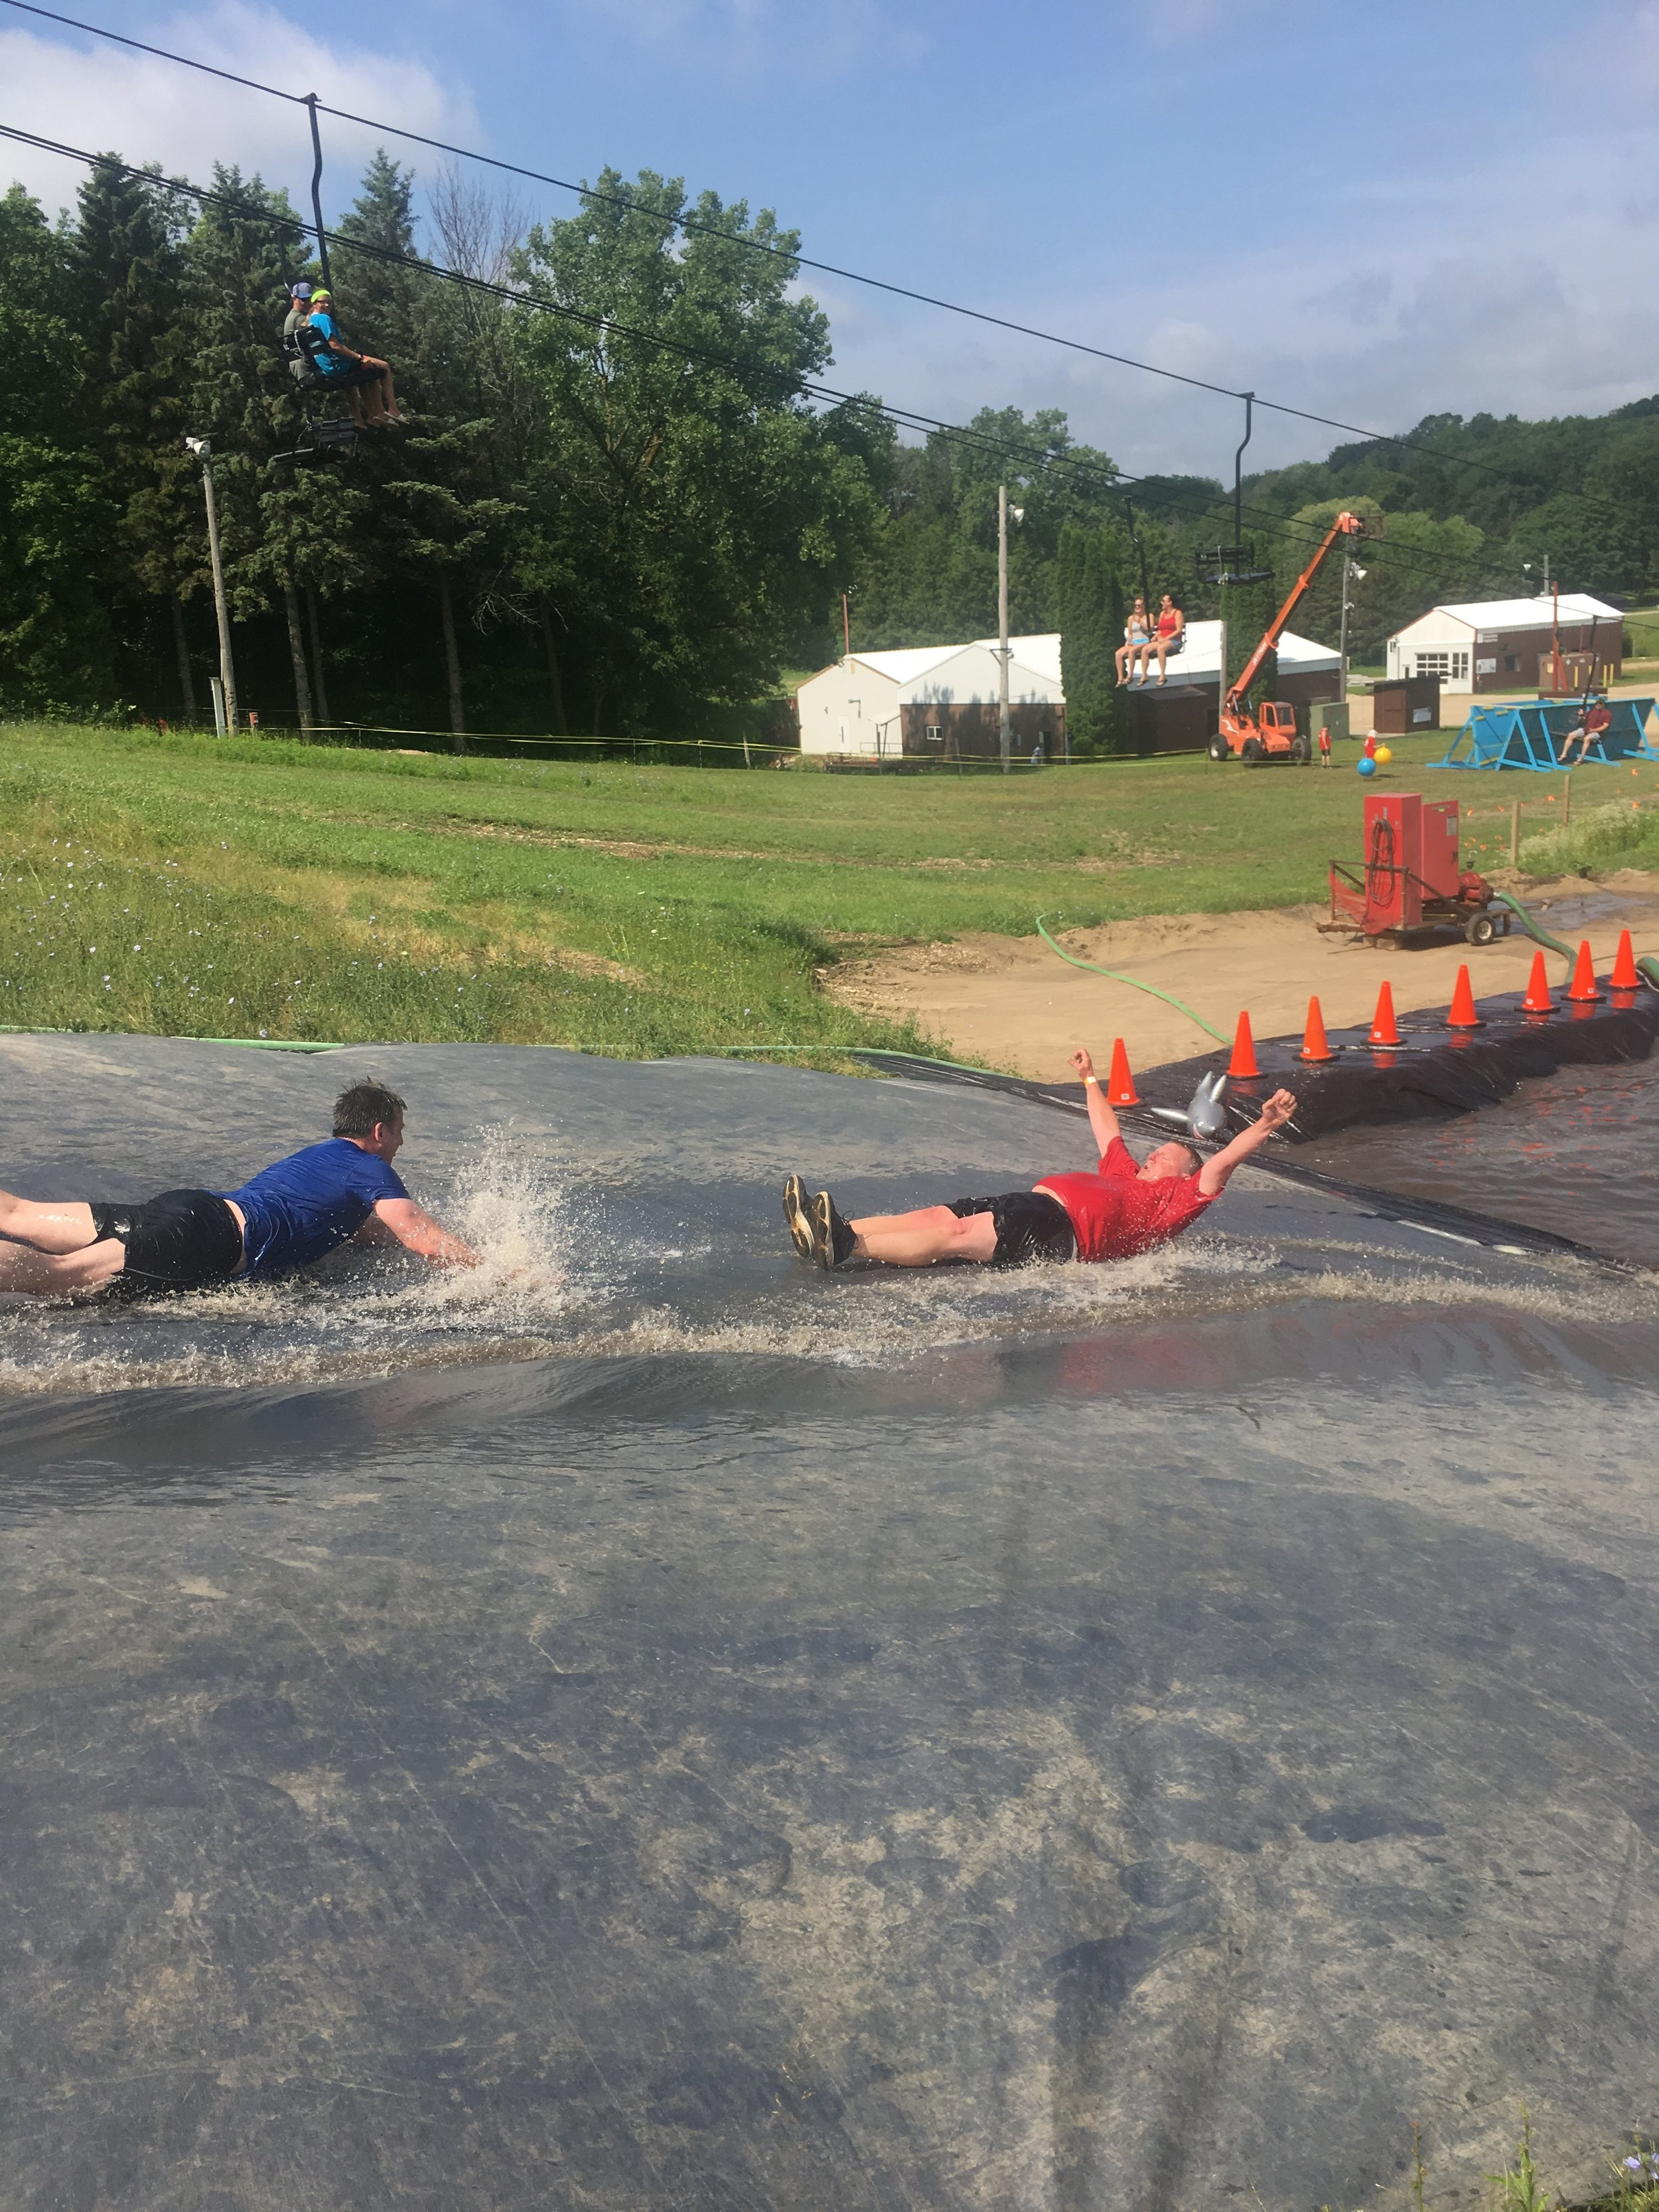 Tim sliding into the finish line at the 2019 Mud Run